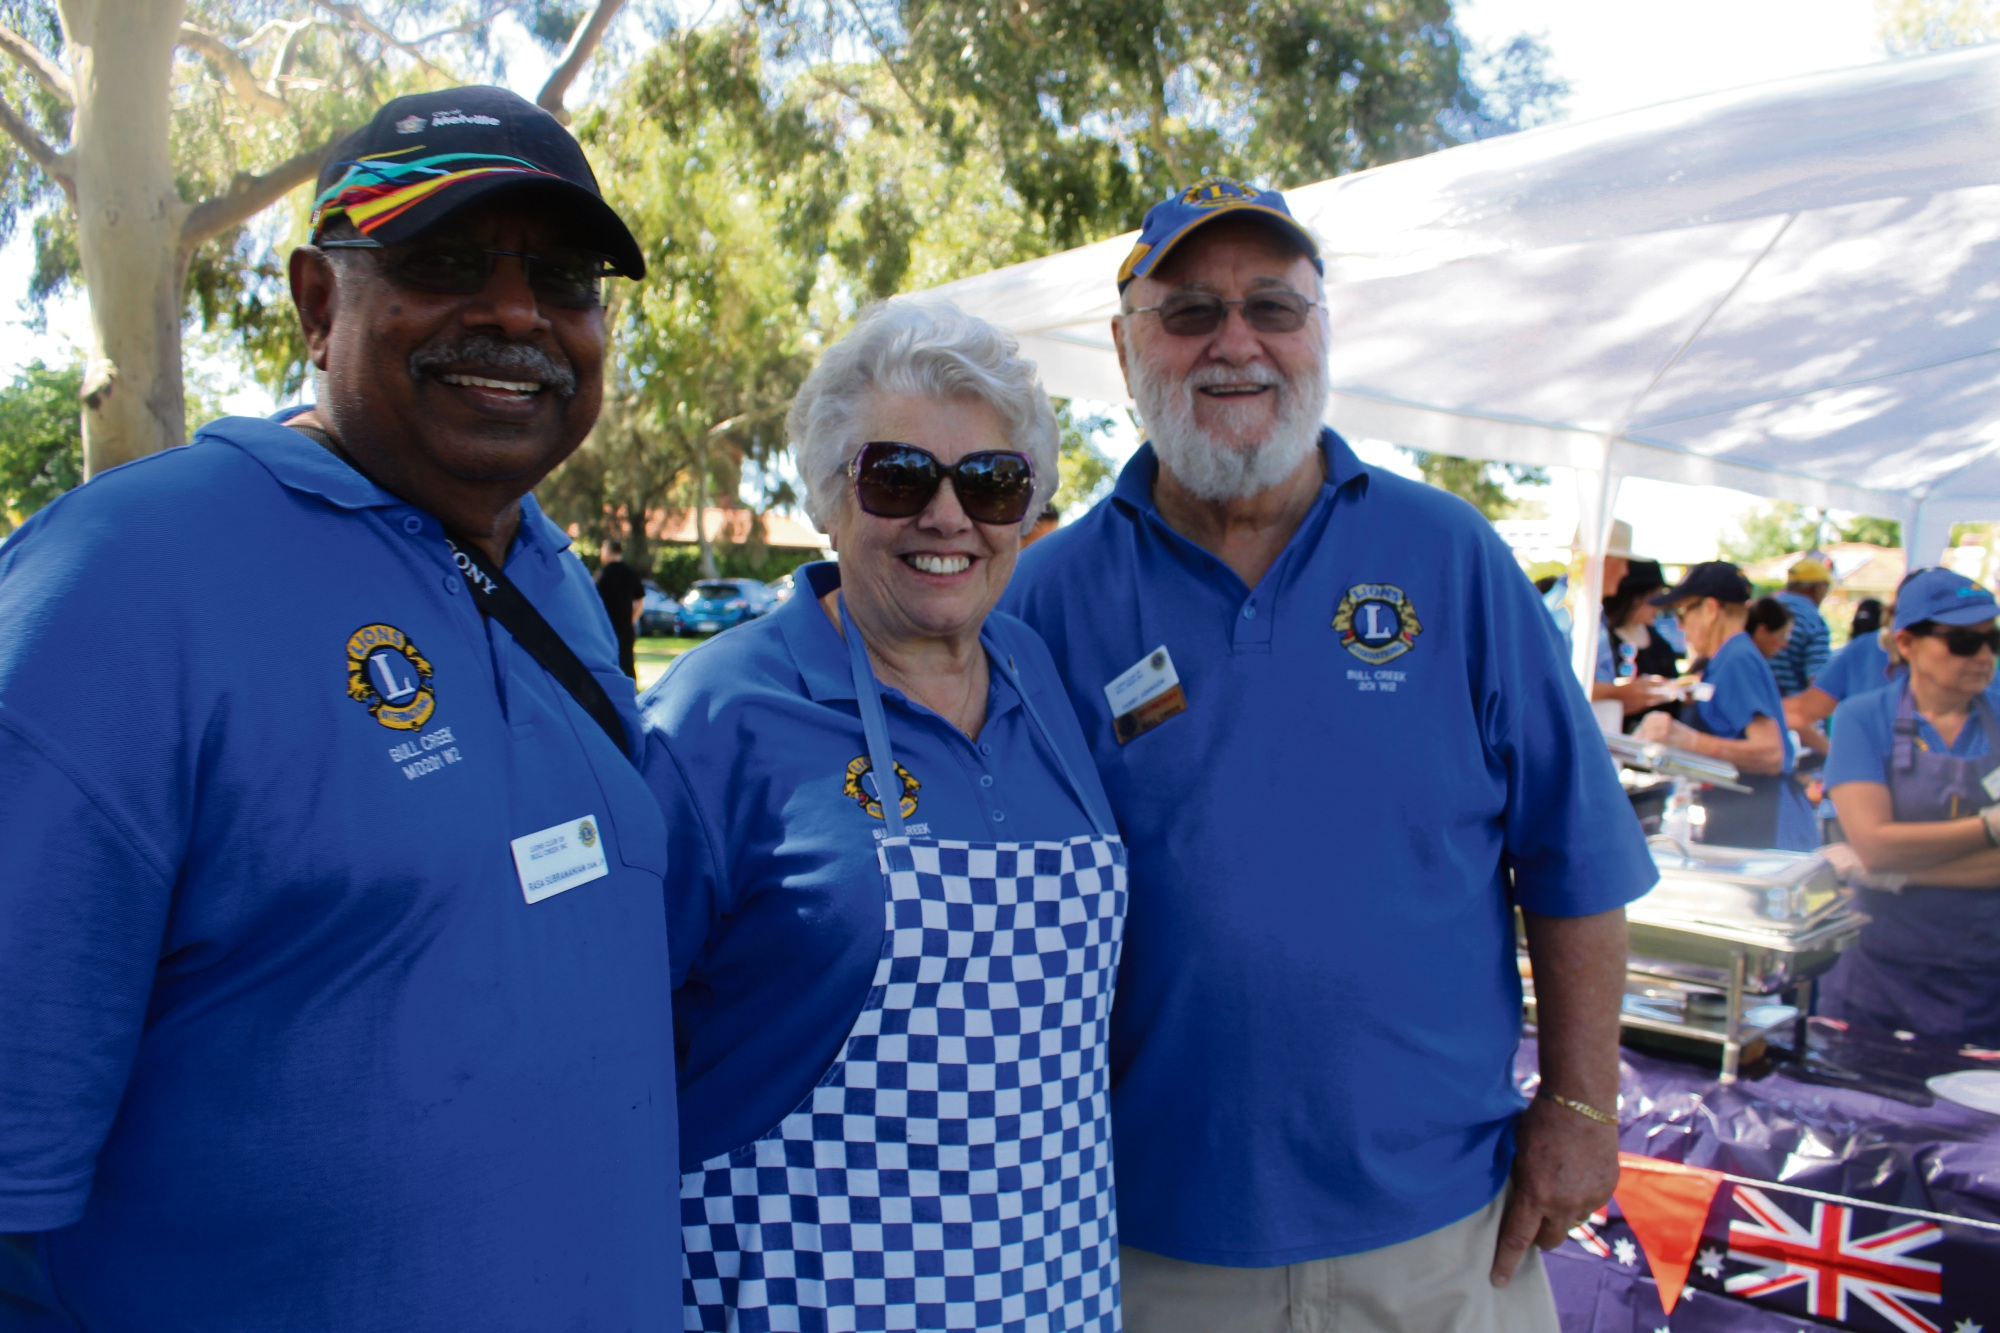 Lions Club of Bull Creek Rasa Subramaniam, president Jill Jonker and Terry Johnson.